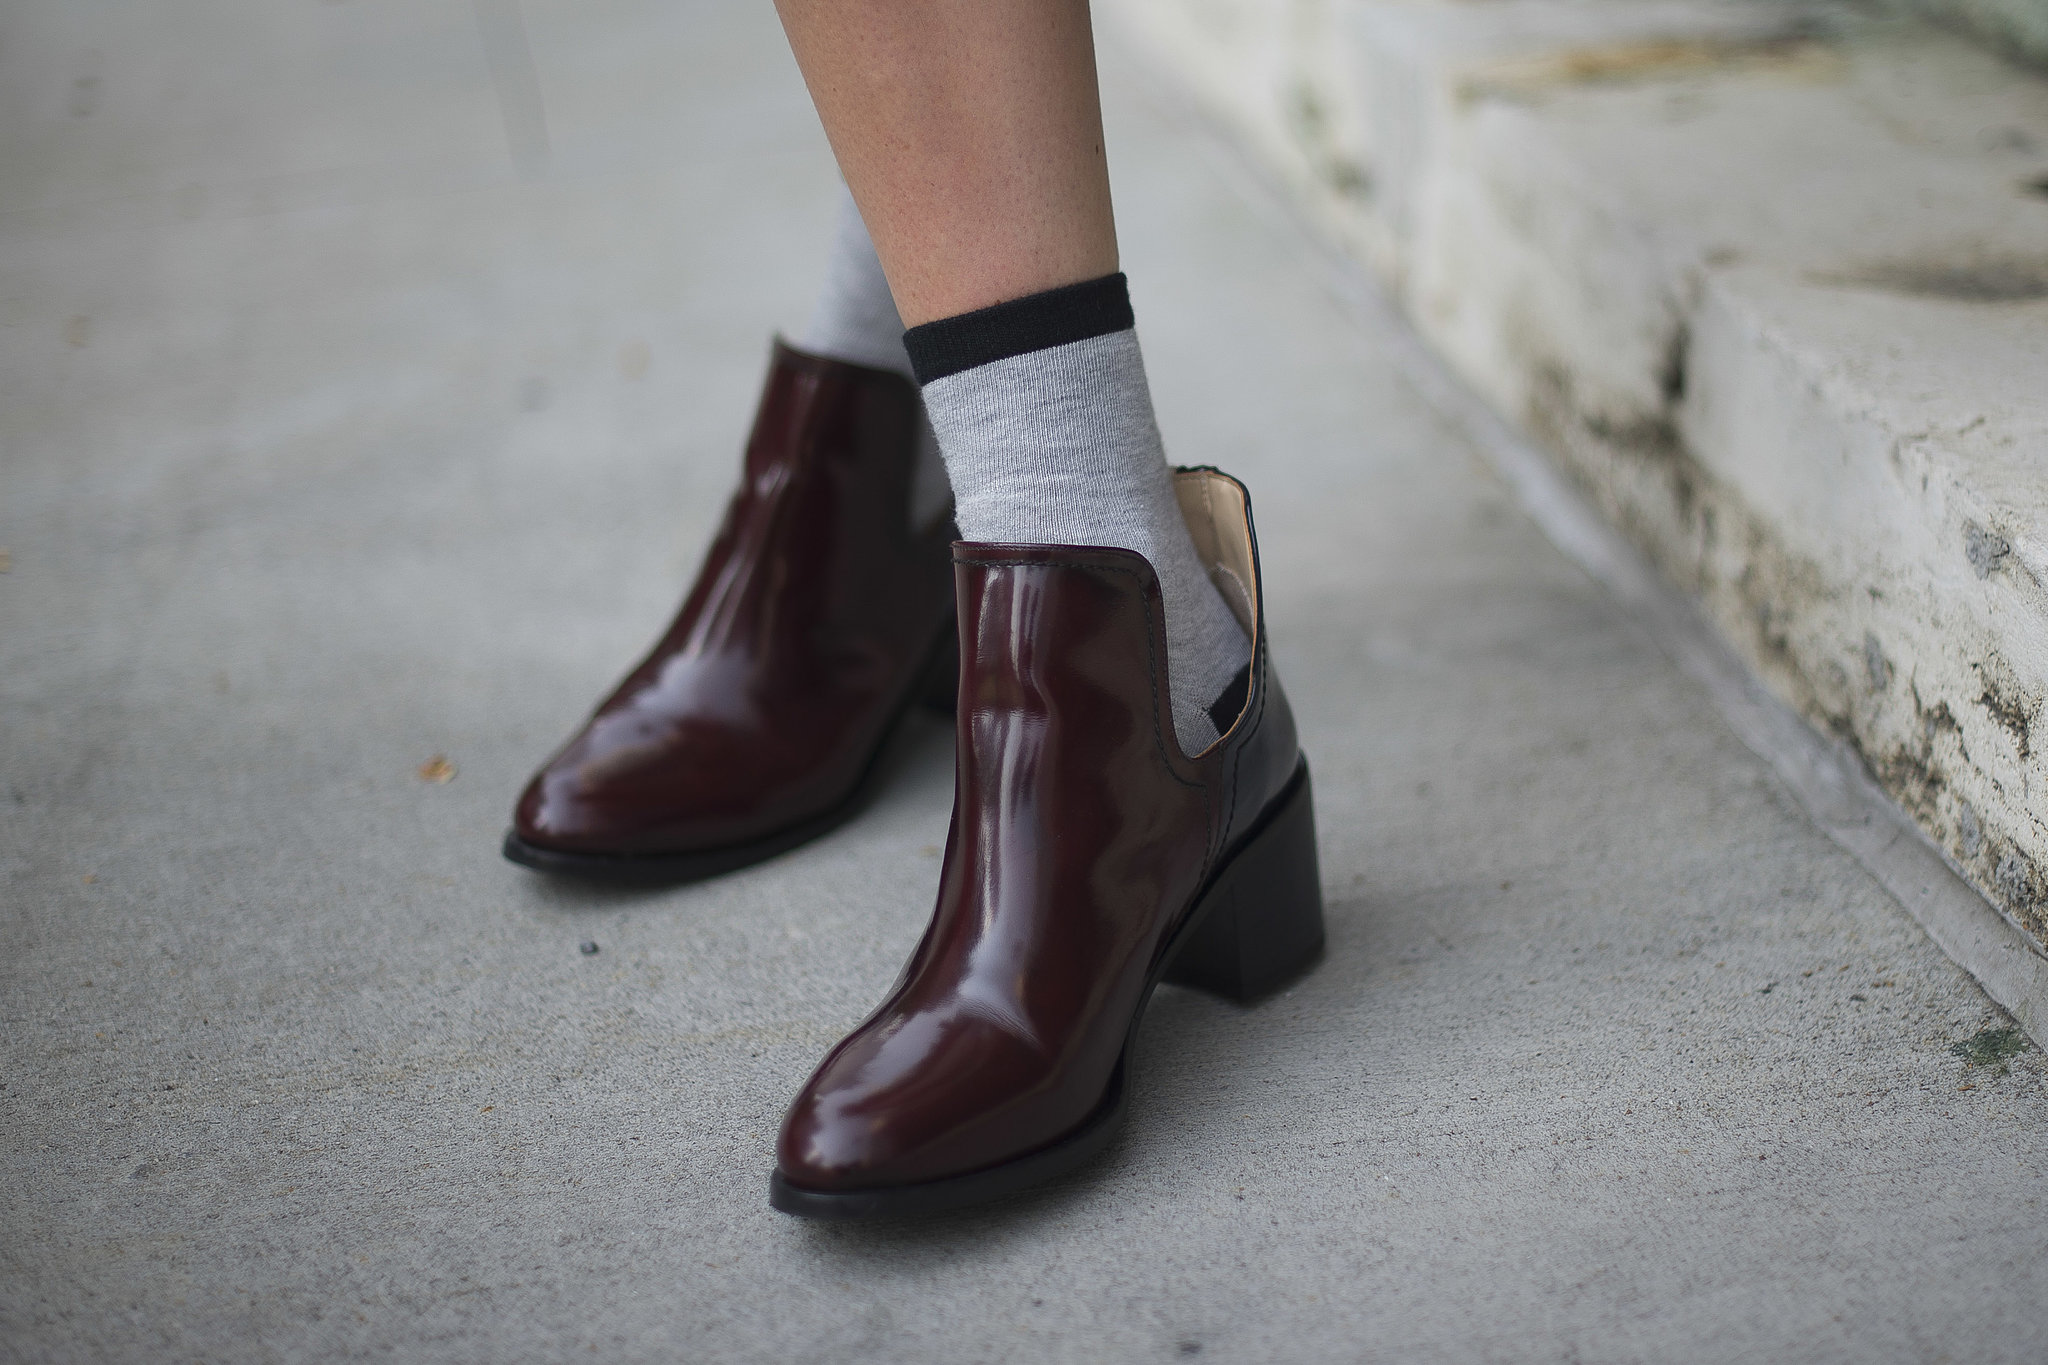 A menswear-inspired Fall boot in the richest burgundy — what's not to like?